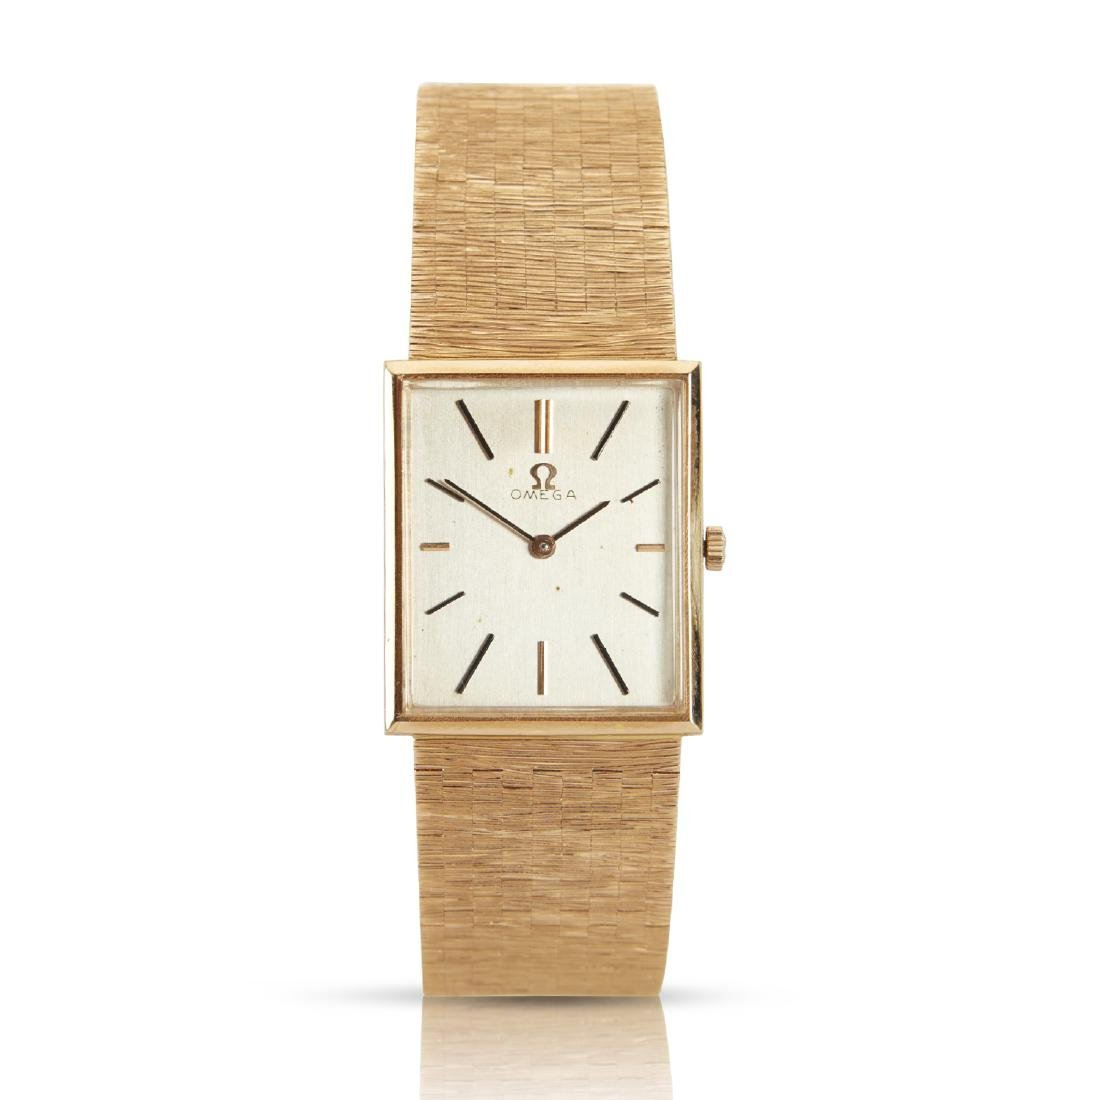 Omega, 18K Dress Watch, Ref. Cal. 620